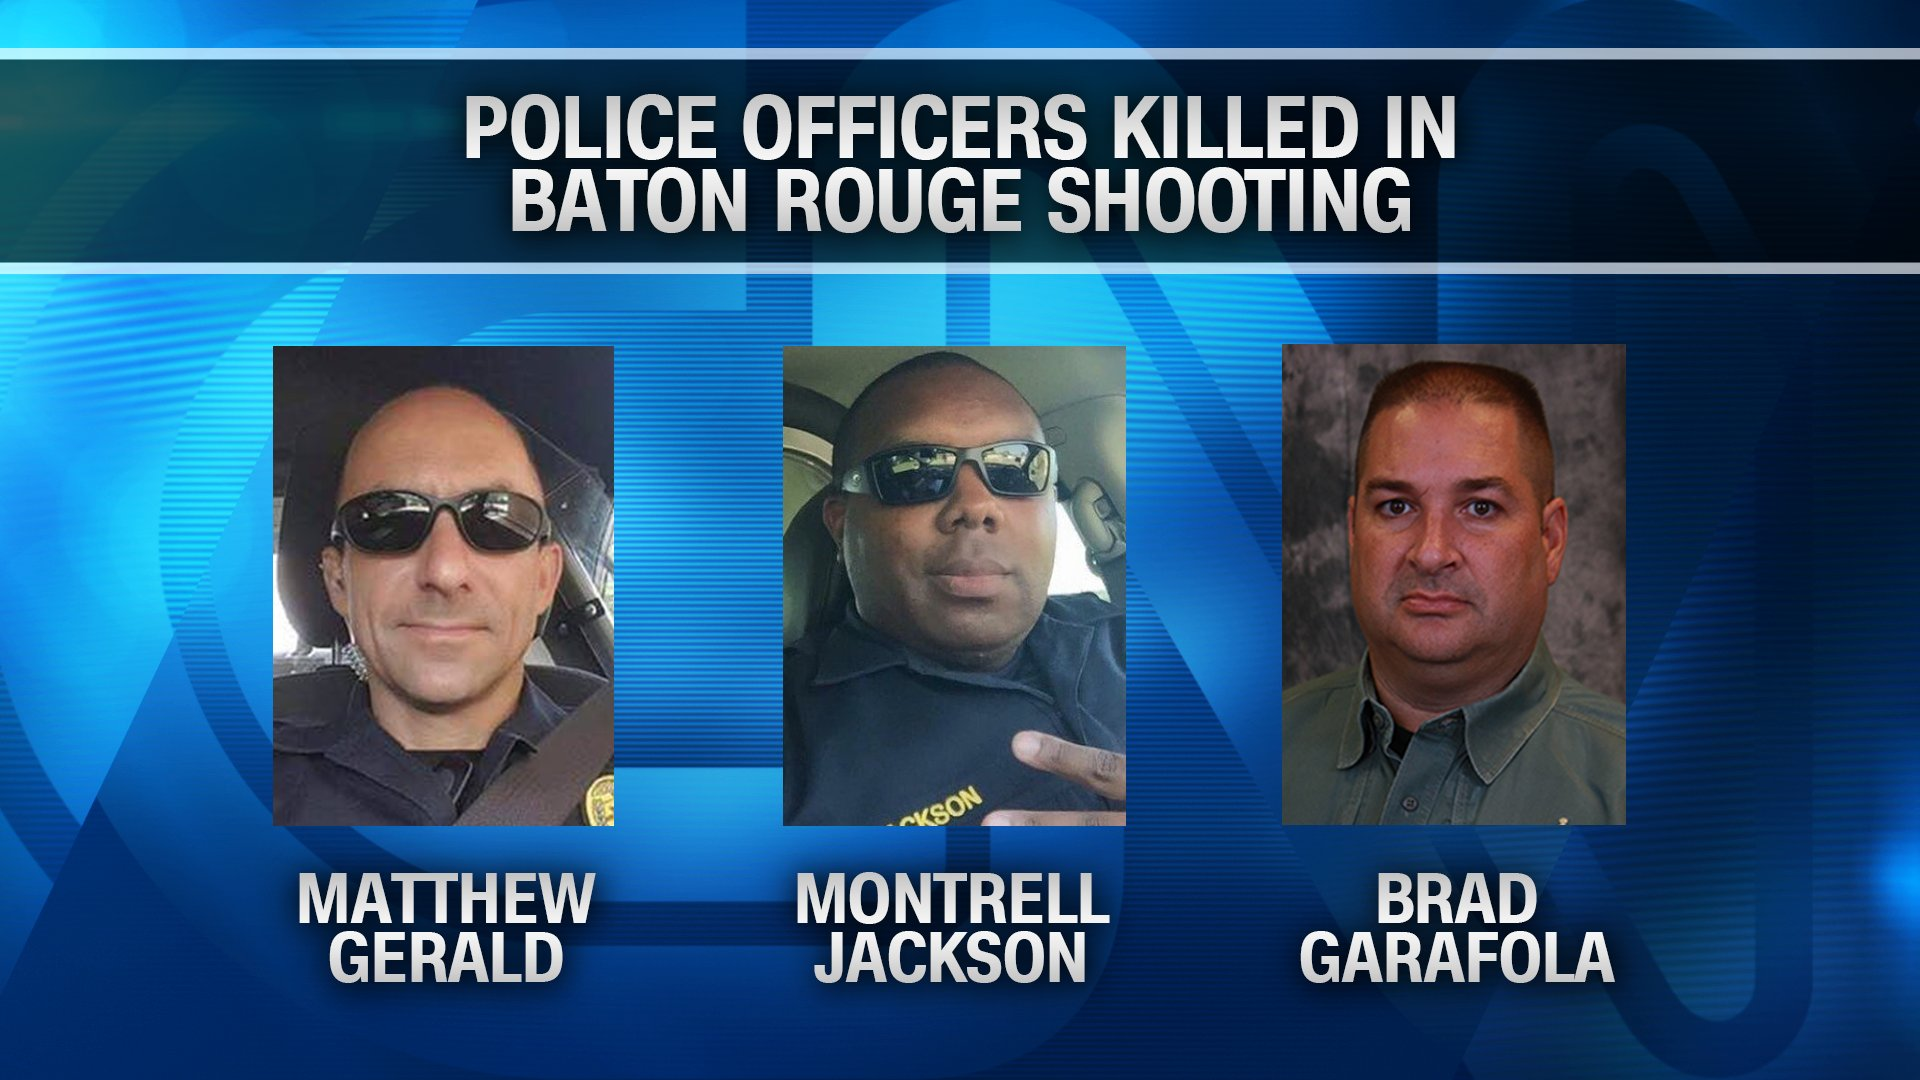 Matthew Gerald, Montrell Jackson and Brad Garafola were the officers killed Sunday morning in the shootout in Baton Rouge. Credit:CNN/Facebook